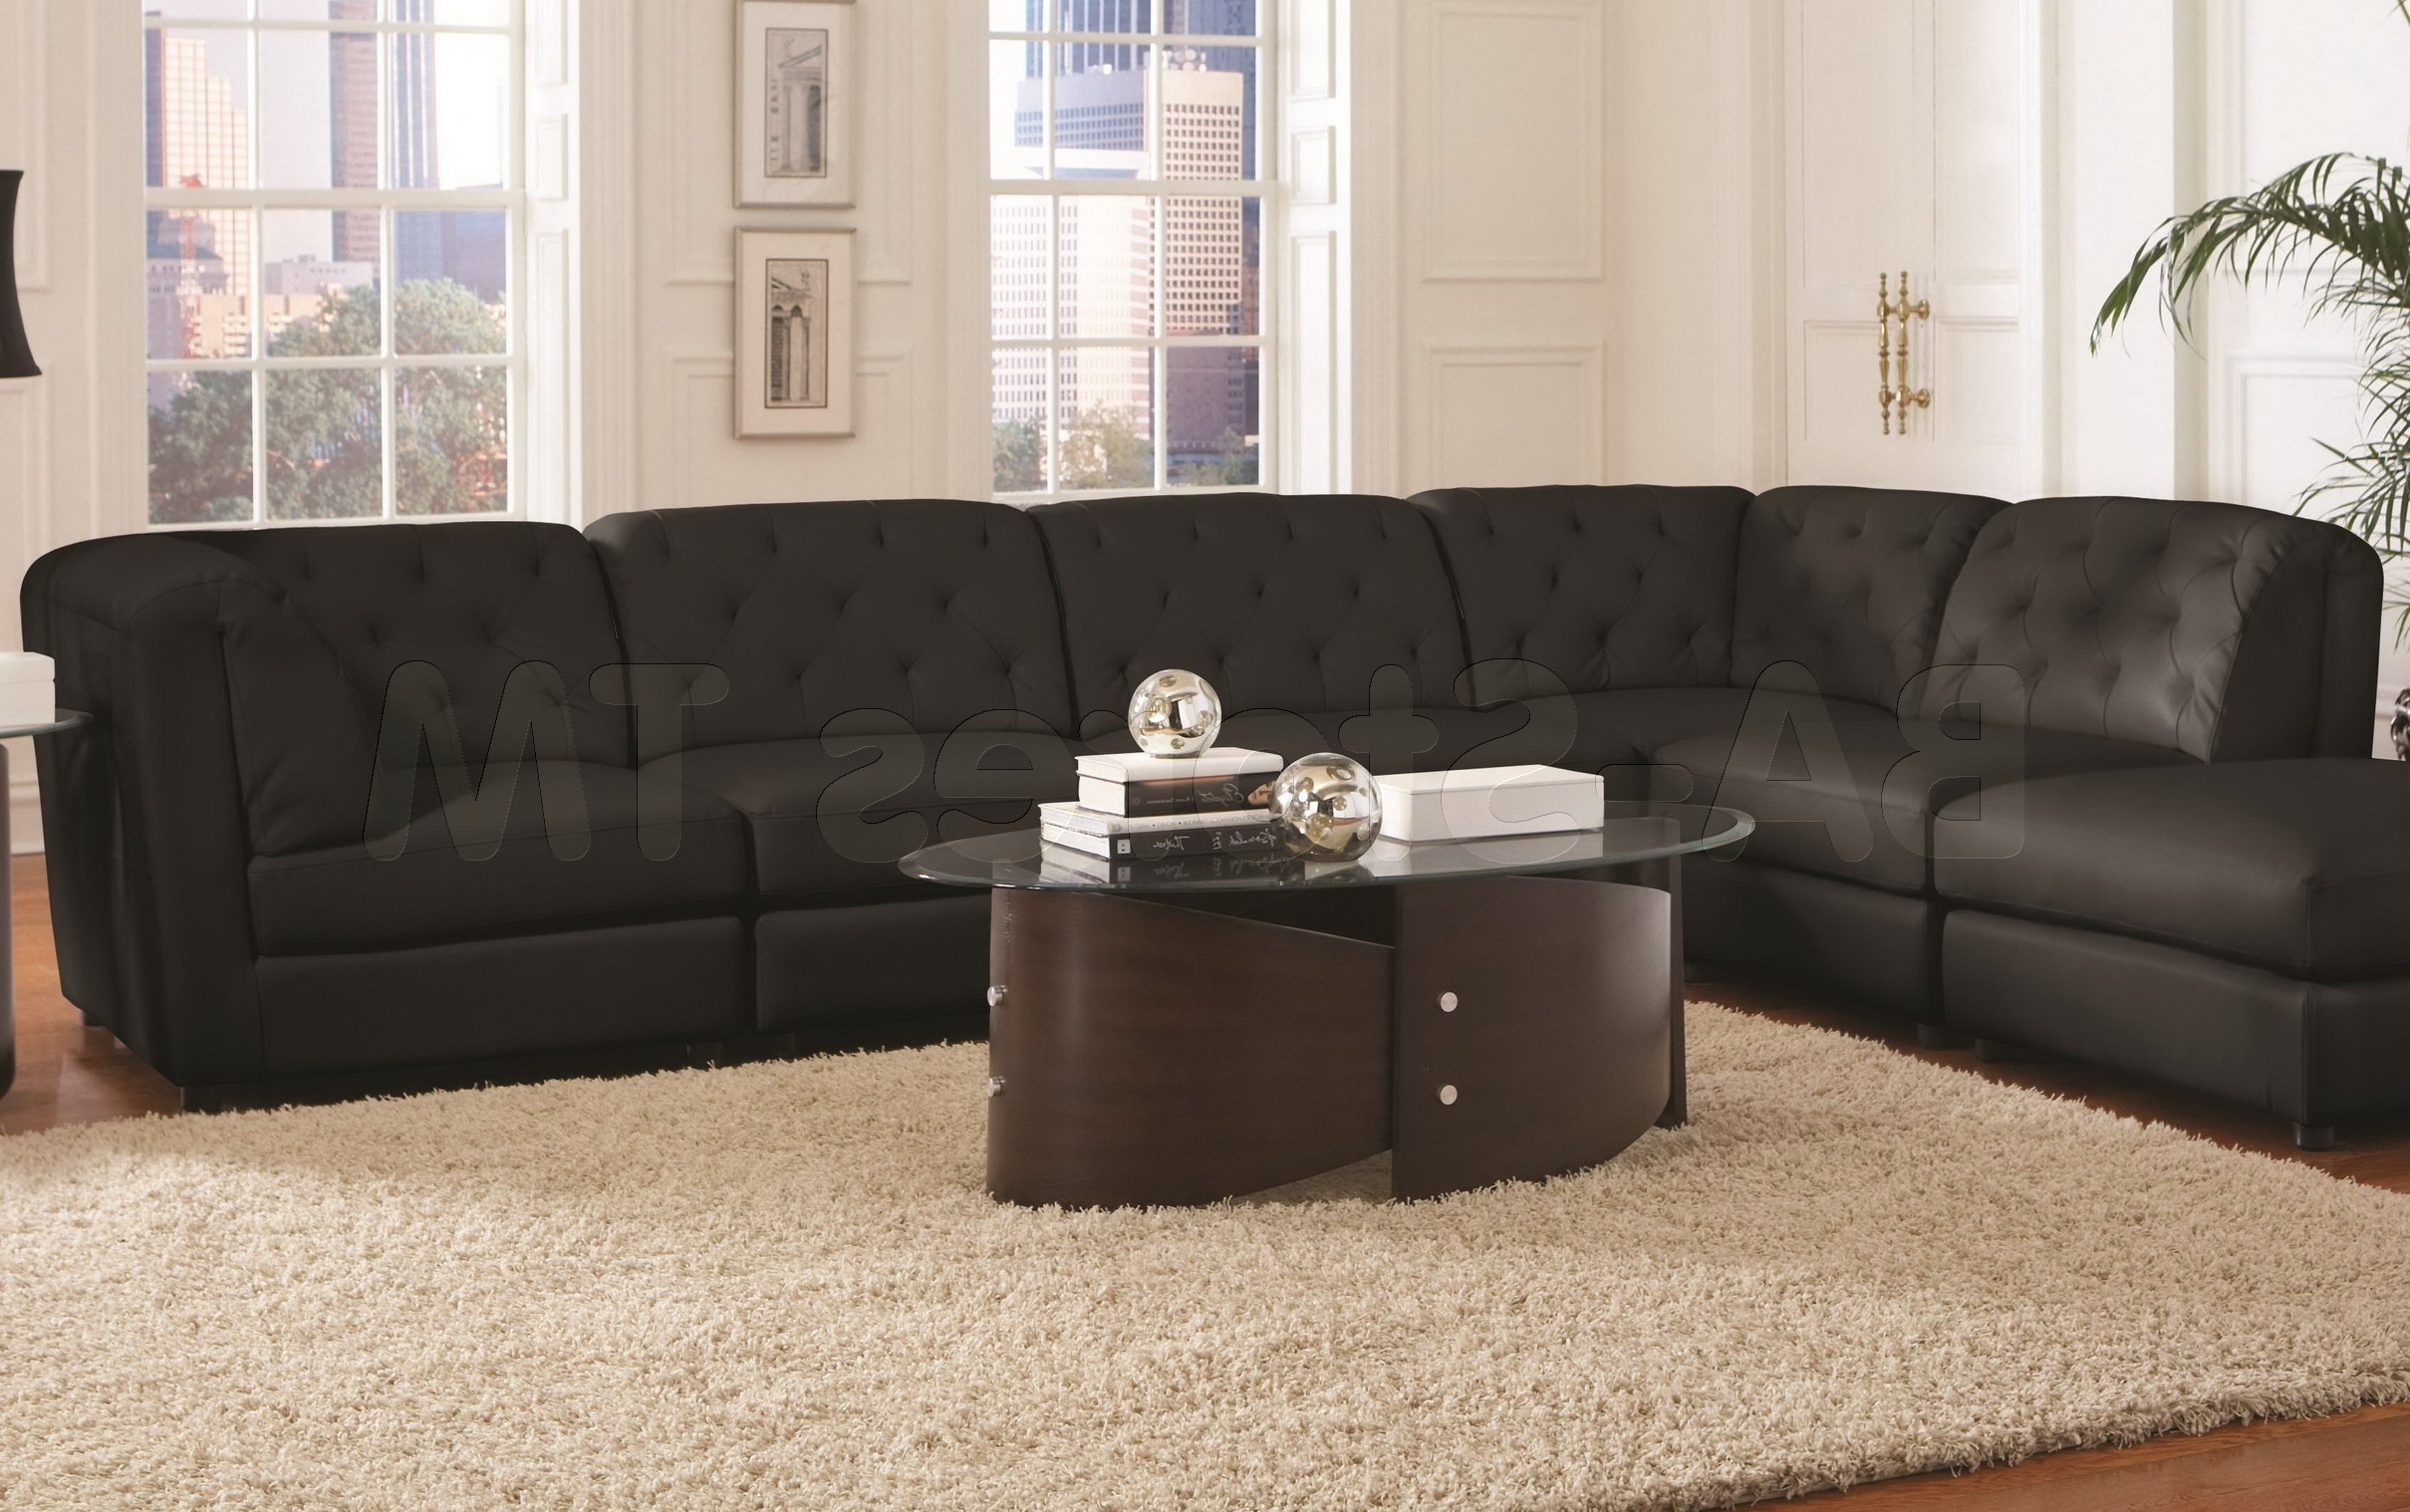 Newest Wide Seat Sectional Sofas With Regard To Couch (View 13 of 20)